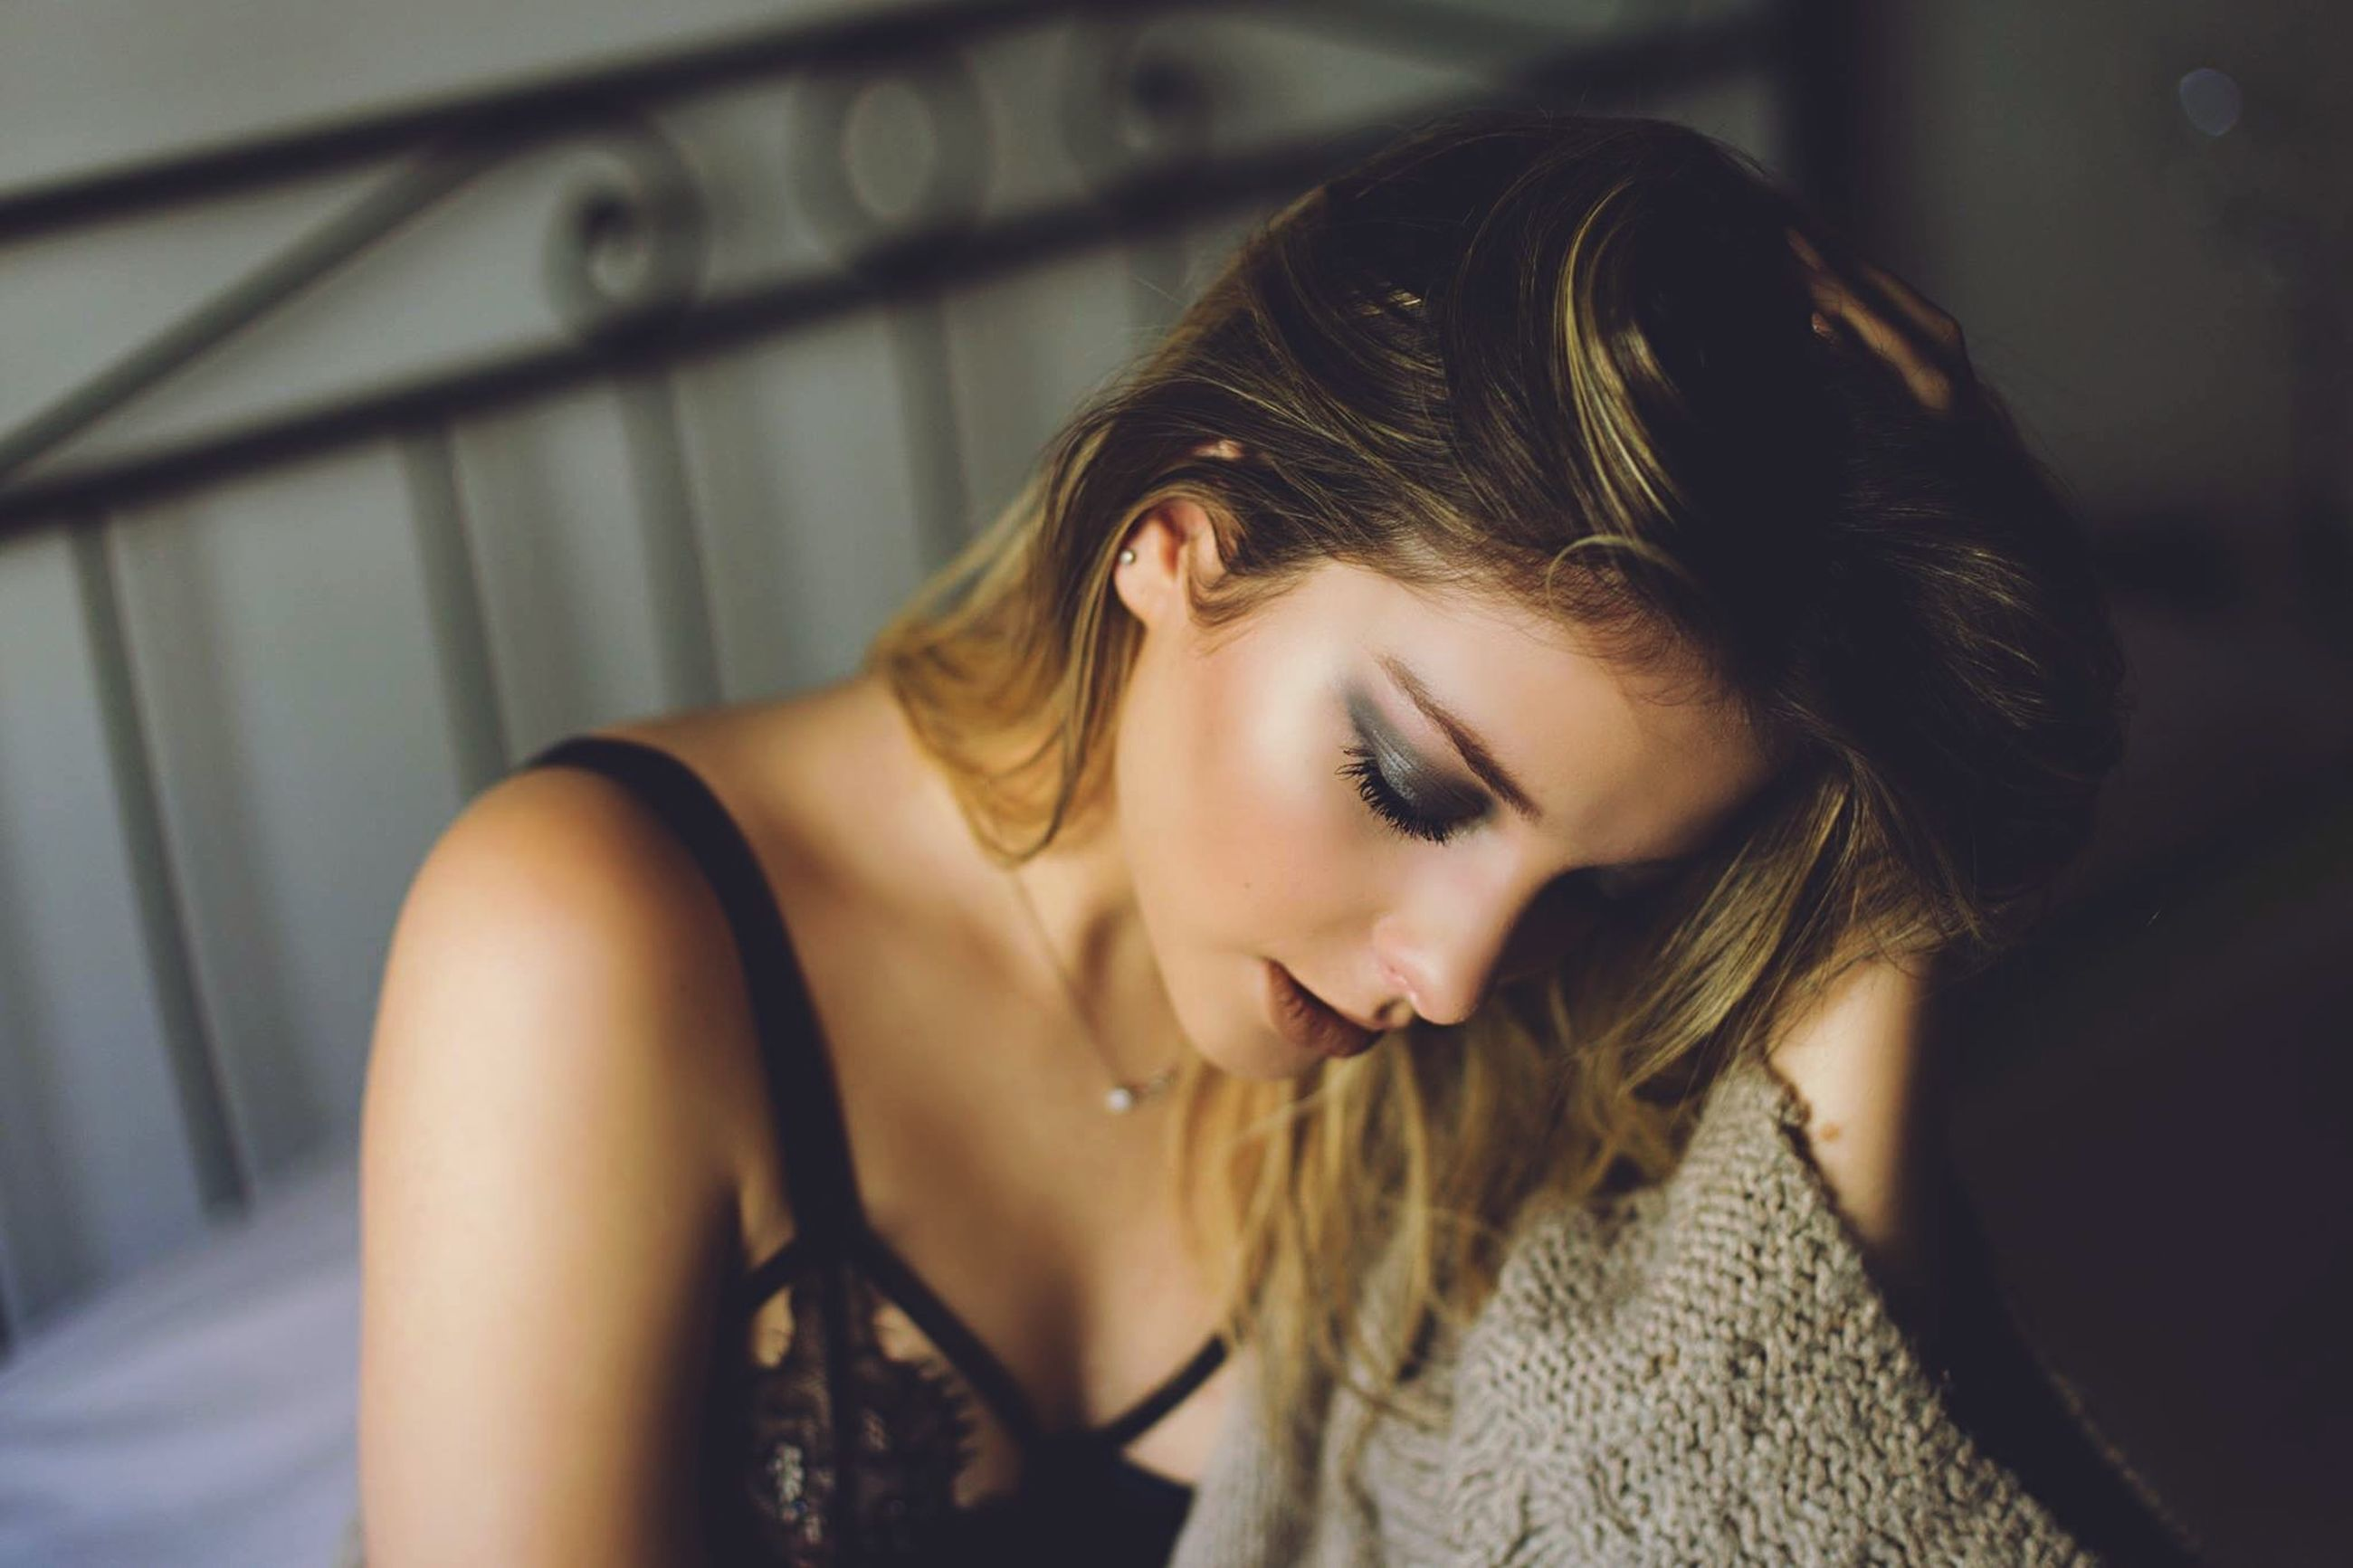 person, young women, young adult, lifestyles, headshot, long hair, indoors, portrait, focus on foreground, leisure activity, looking at camera, front view, casual clothing, close-up, contemplation, smiling